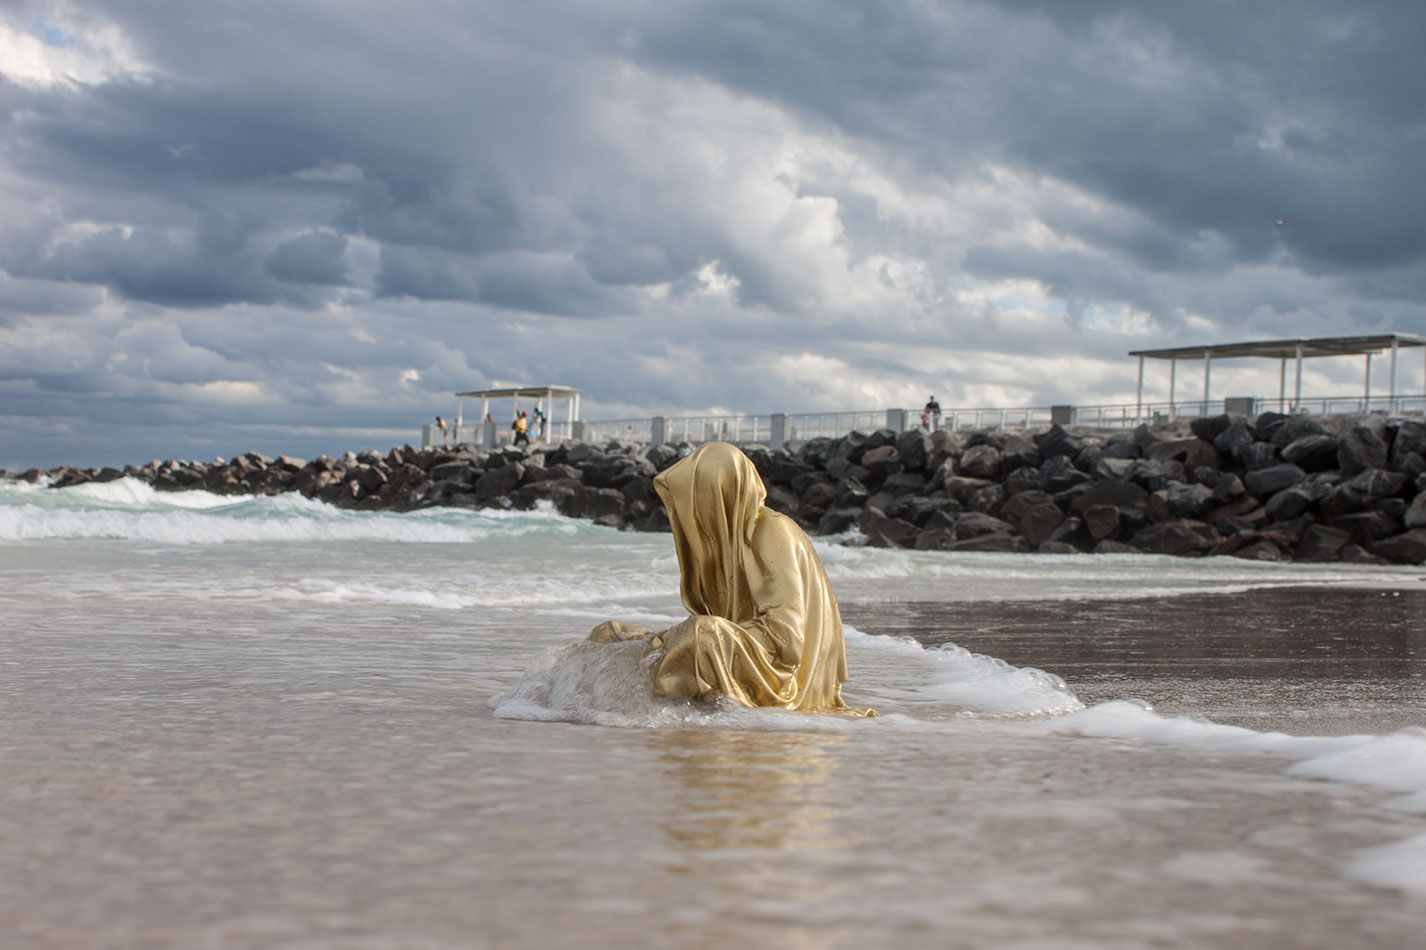 public-art-basel-miami-beach-fair-usa-florida-guardians-of-time-manfred-kili-kielnhofer-contemporary-fine-art-modern-arts-design-antiques-sculpture-6857